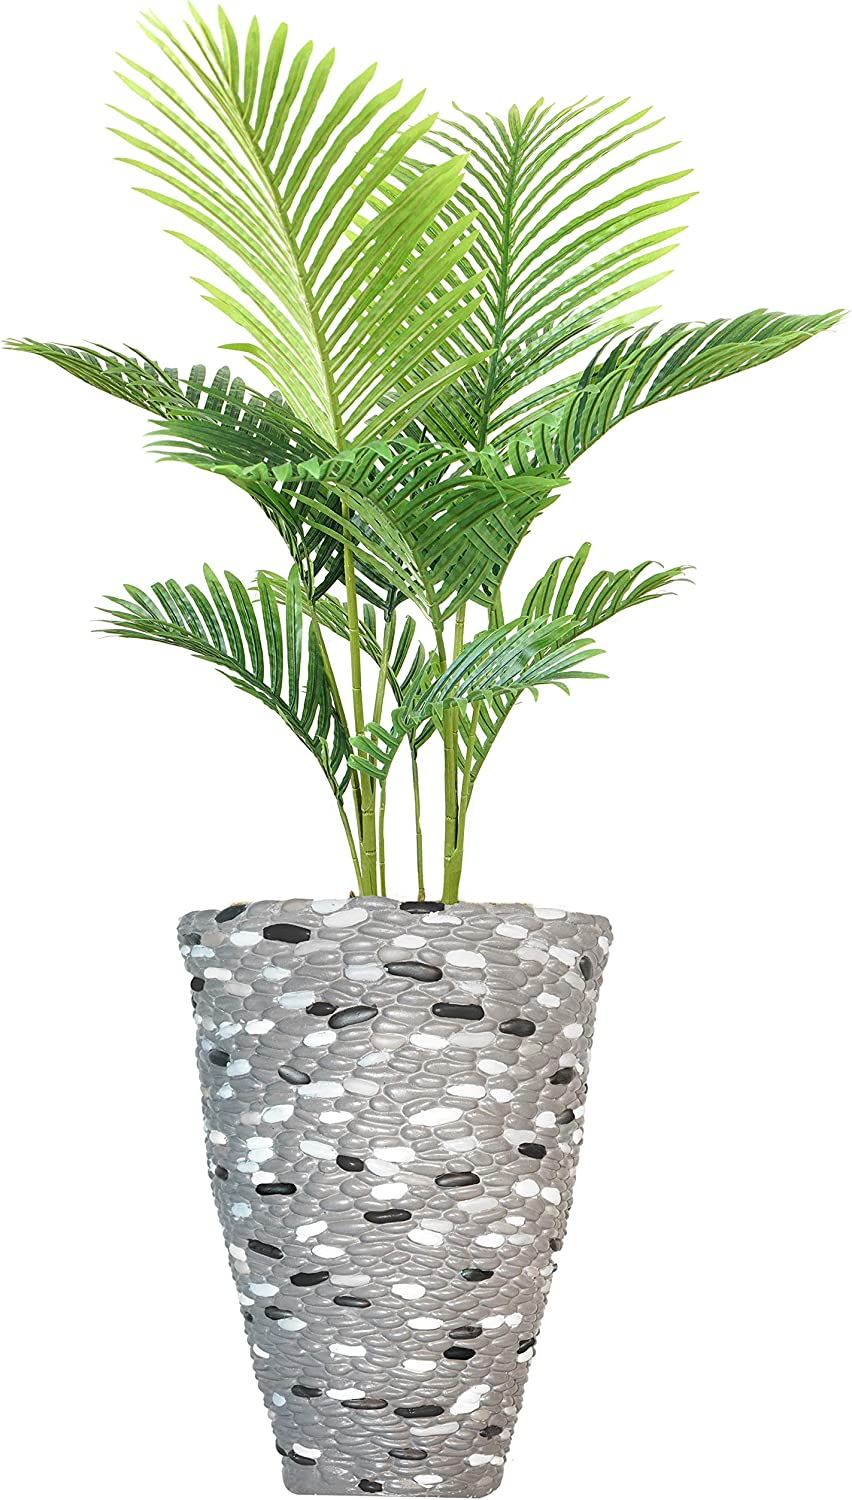 Bargain sale Vintage Home Décor Green Emerald Palm Artificial with Fashionable Faux Tree